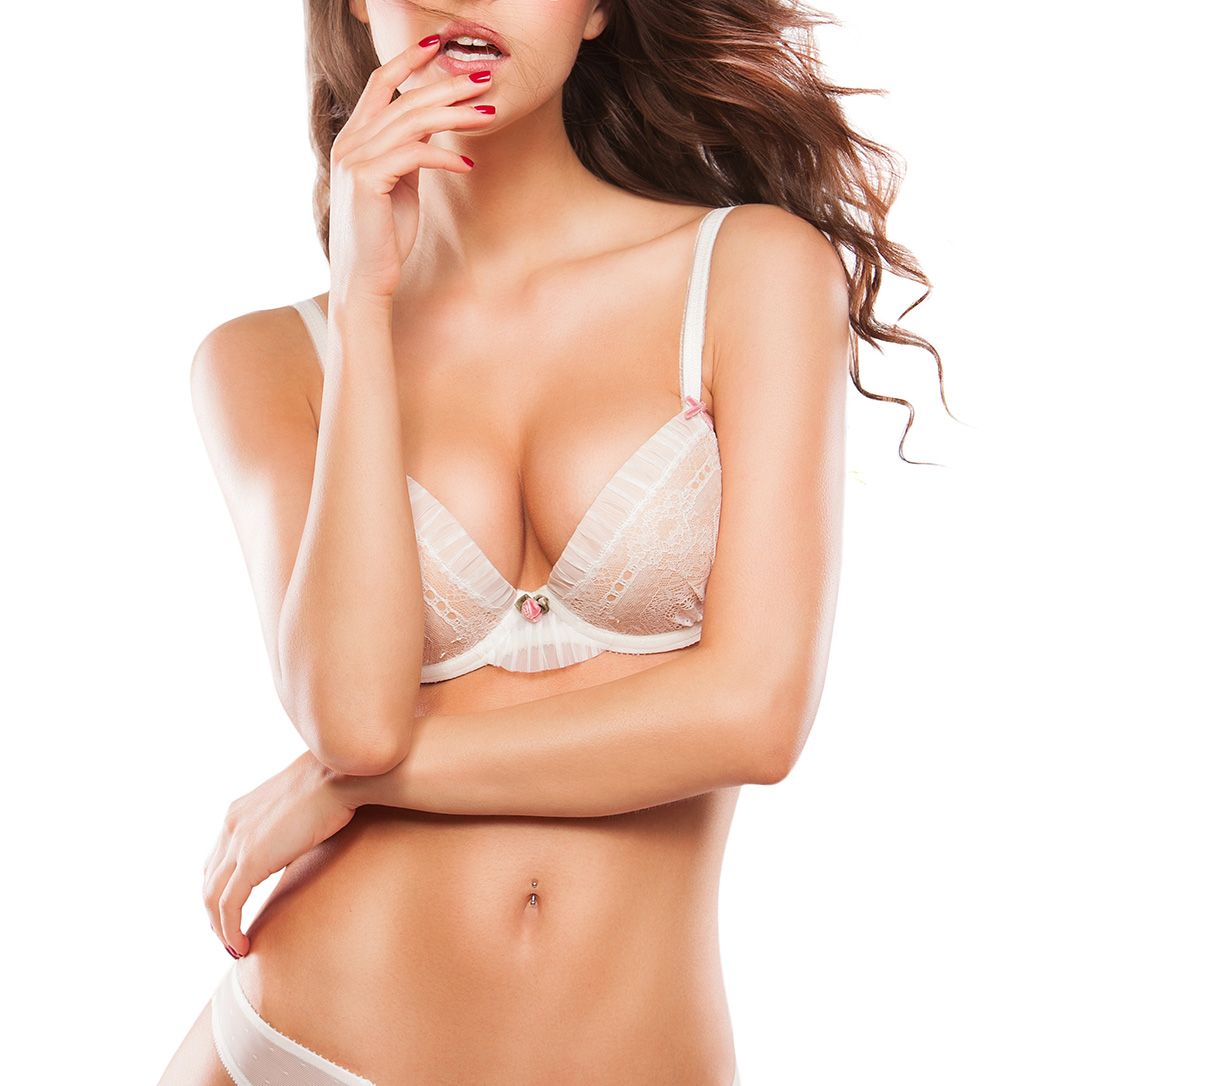 Top Breast Augmentation Incision Options To Know In Miami